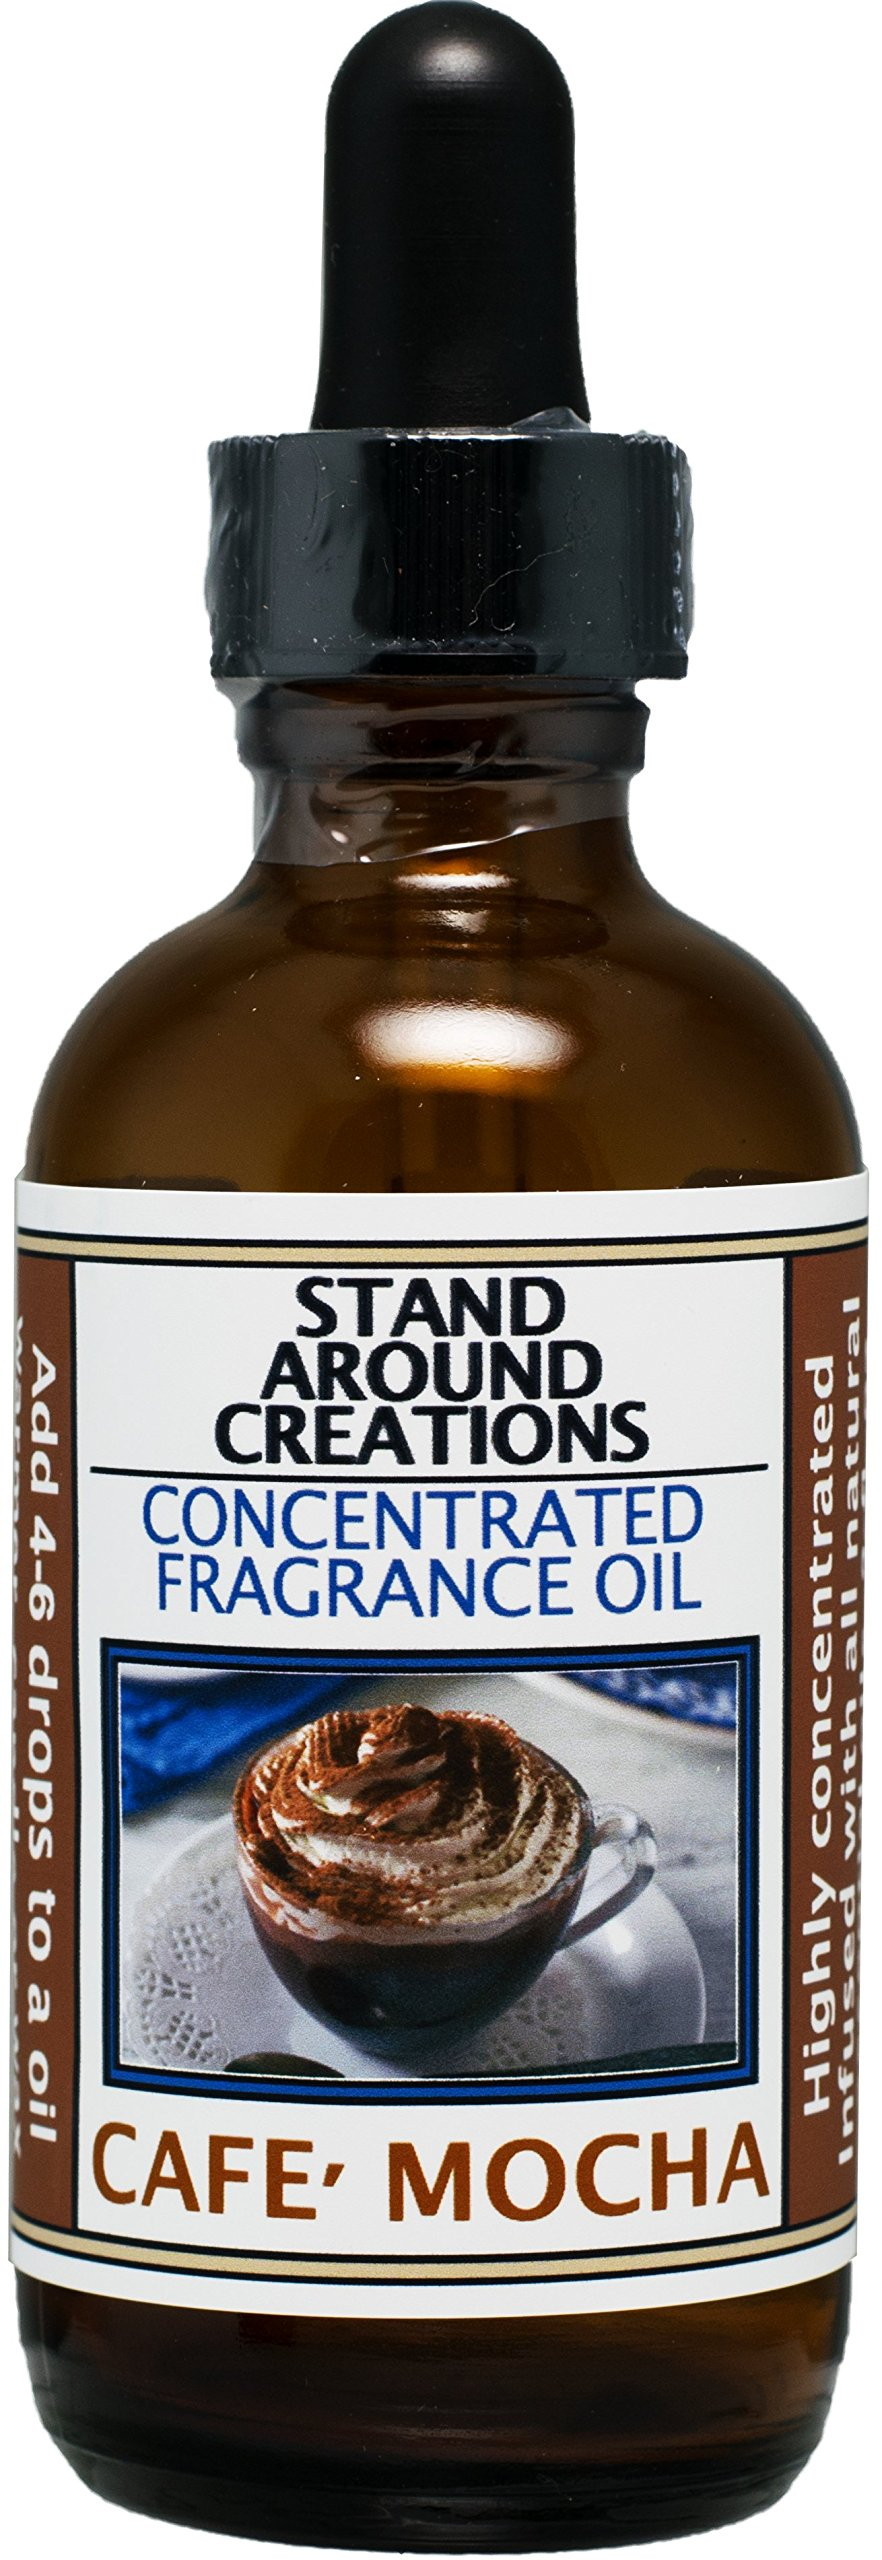 Premium Concentrated Fragrance Oil - Scent: Cafe Mocha- Fresh brewed coffee, chocolate syrup, creamy vanilla w/ marshmallows. Infused w/essential oils. Available in multiple sizes. (2 fl. oz.) by Stand Around Creations (Image #1)